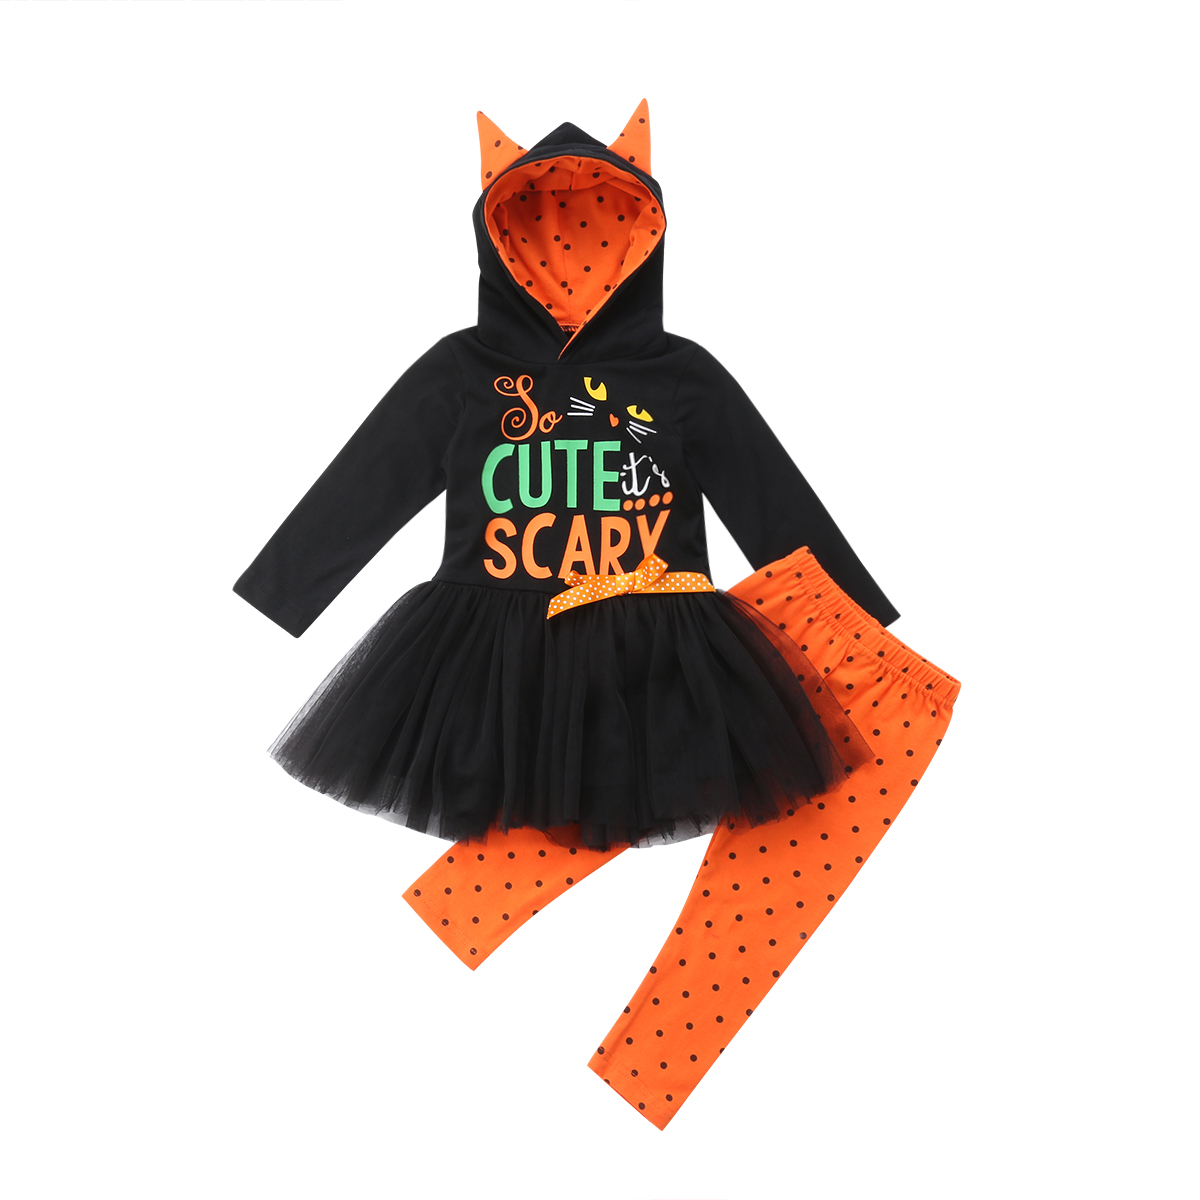 Mother & Kids 1-5t Halloween Costume For Kids Baby Girl Party Clothing Hooded Tops Hoodie Tutu Dress Pants Cute Princess Outfit Set